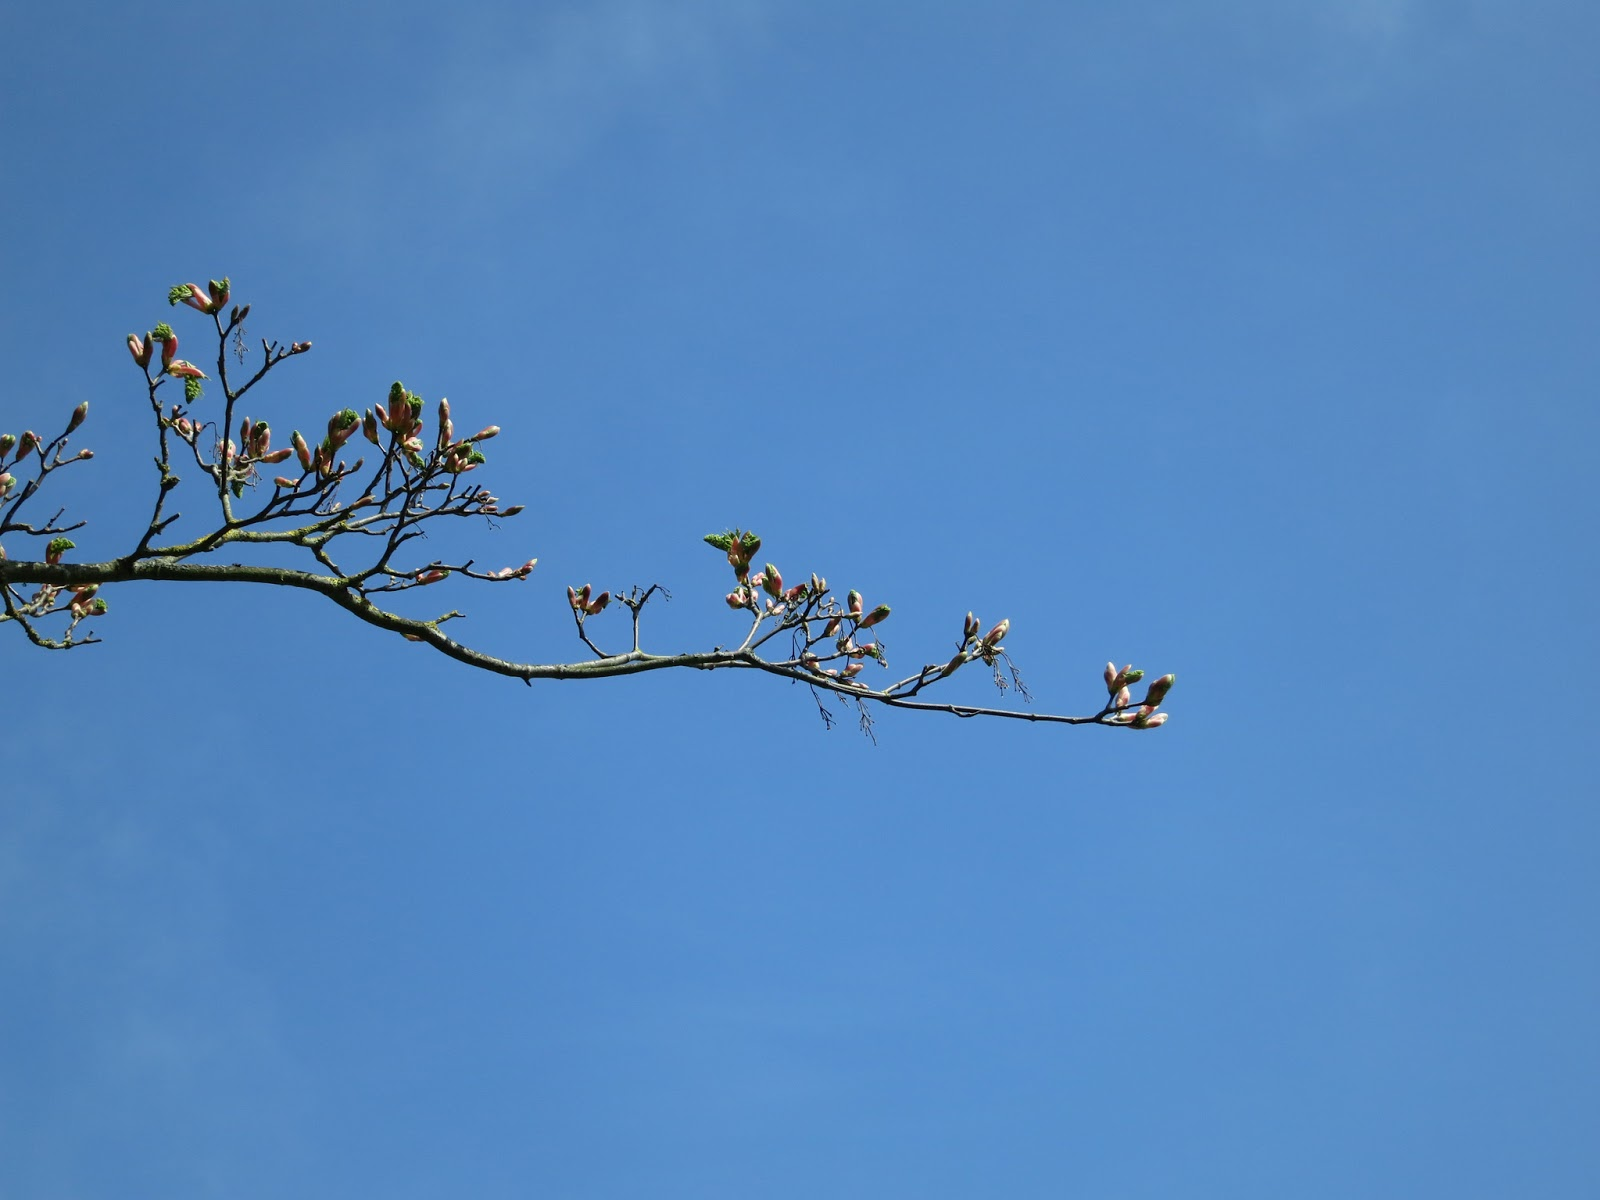 Tree leaves opening against blue sky.